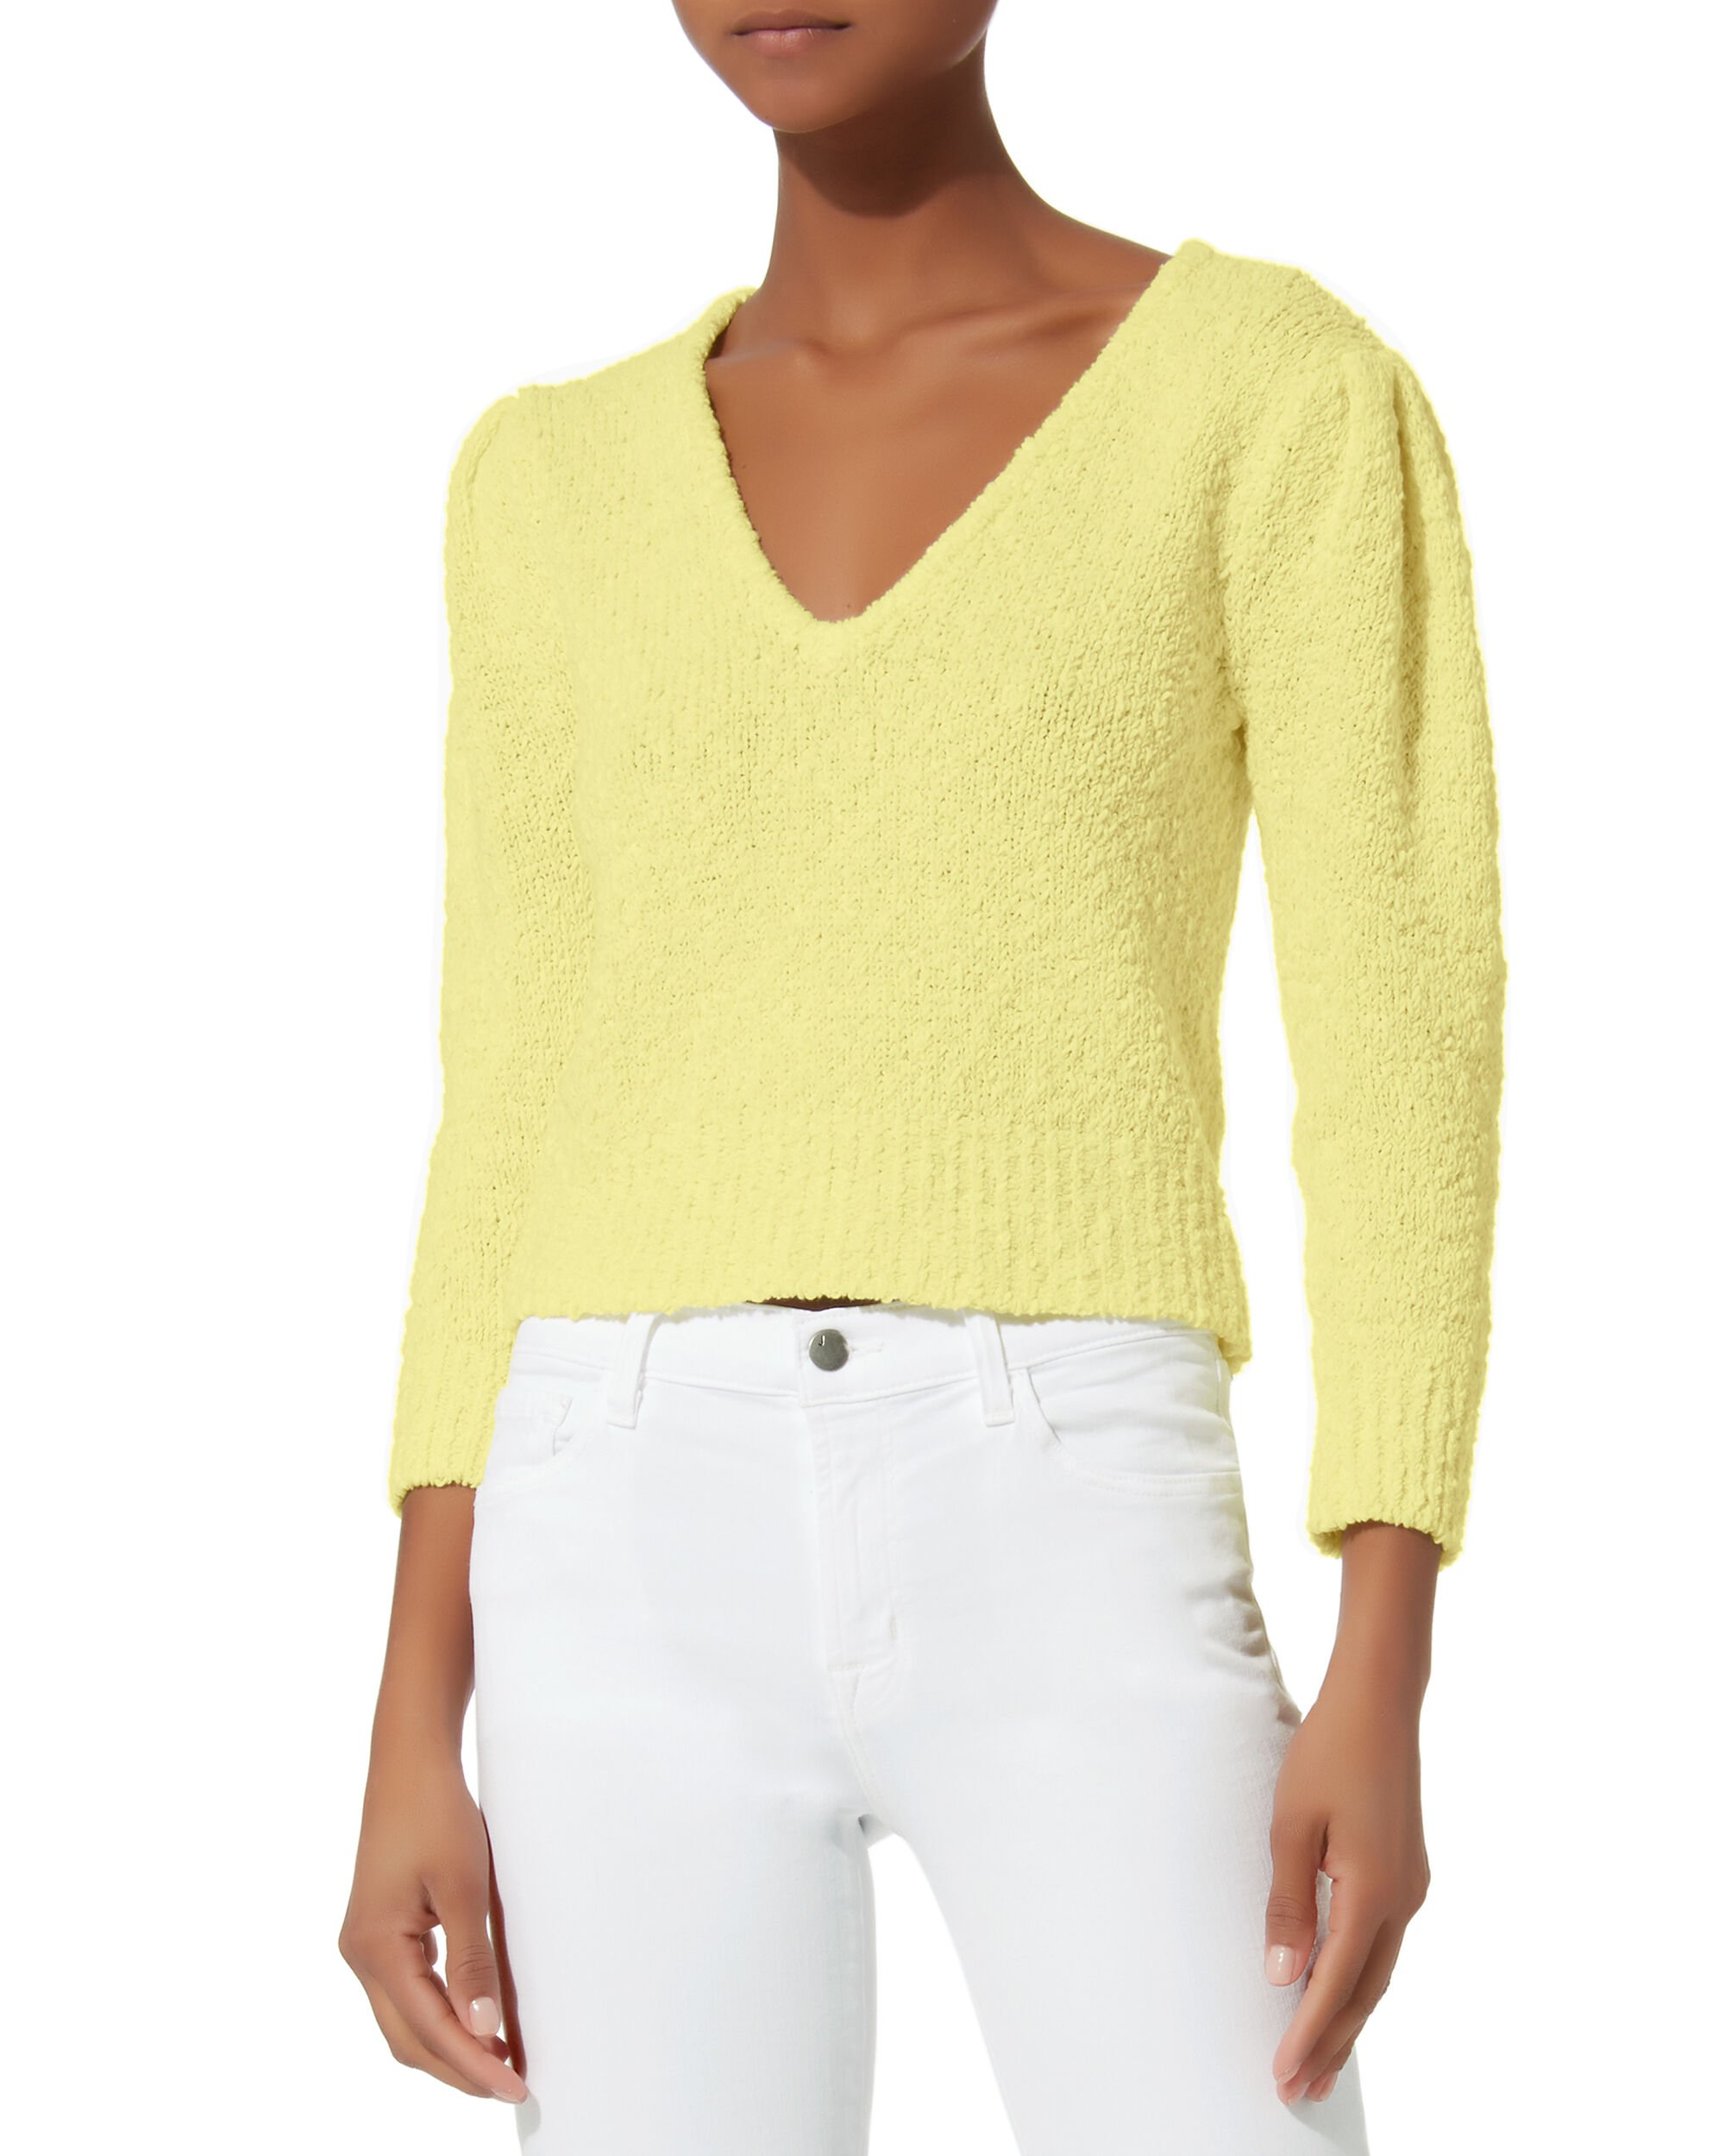 Janice Cropped Sweater, YELLOW, hi-res